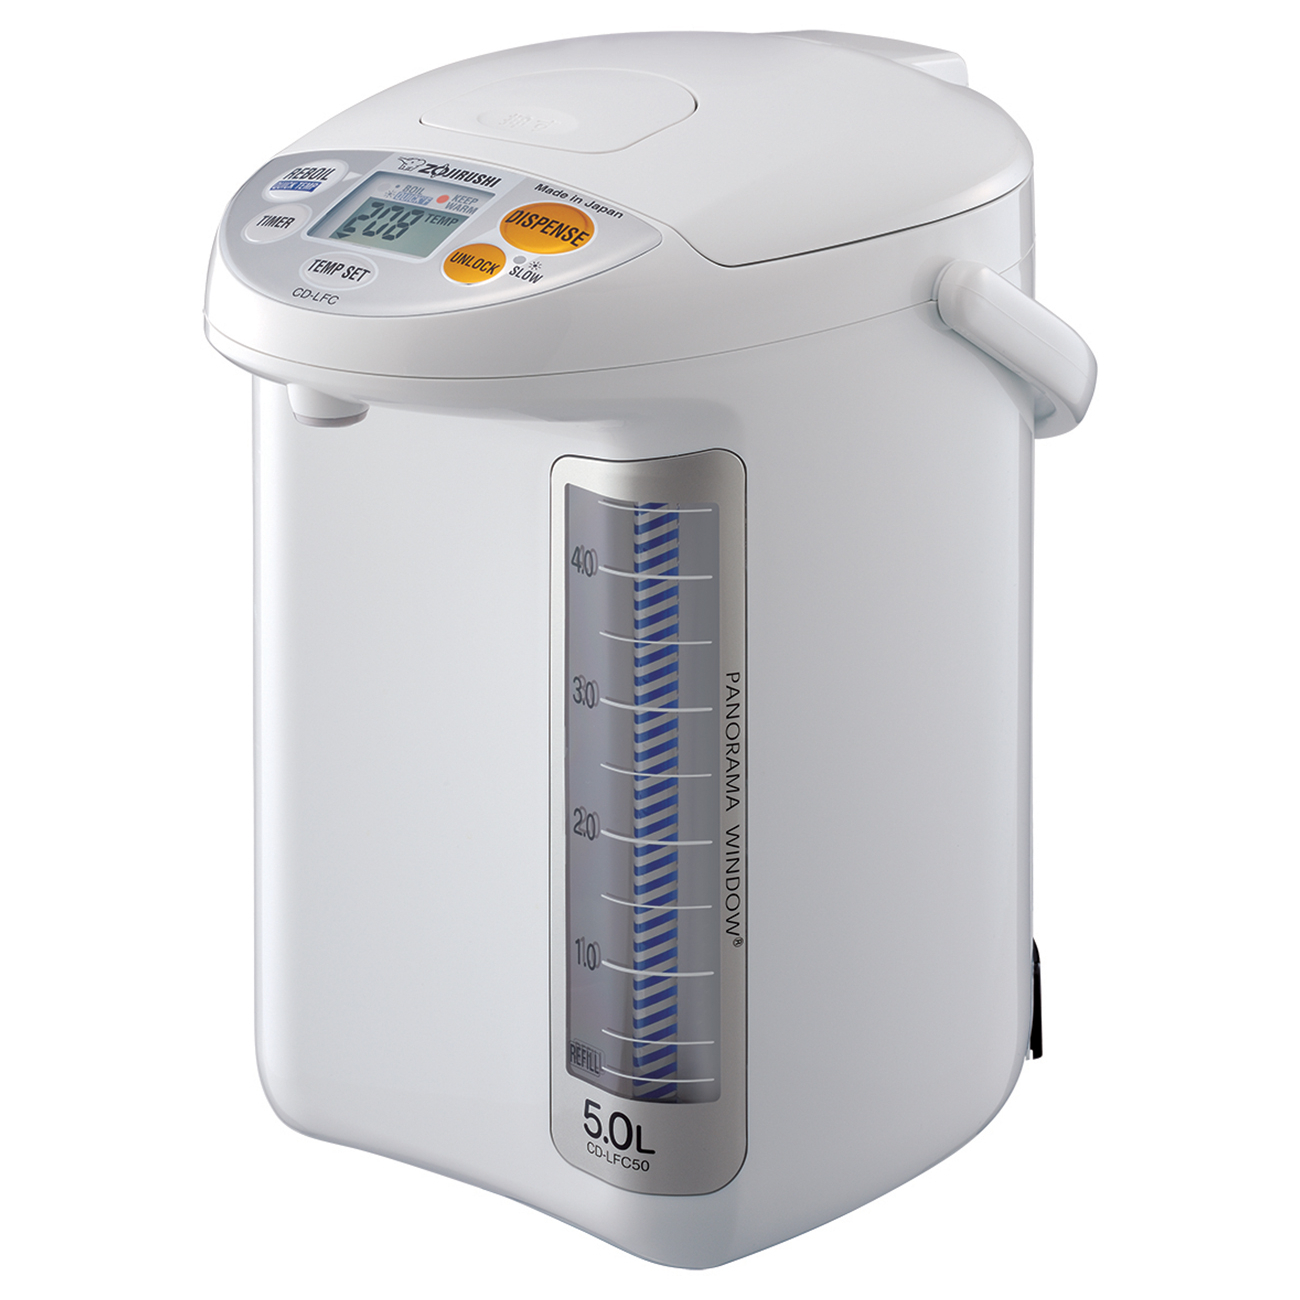 Zojirushi Micom Panorama White 169 Ounce Water Boiler and Warmer